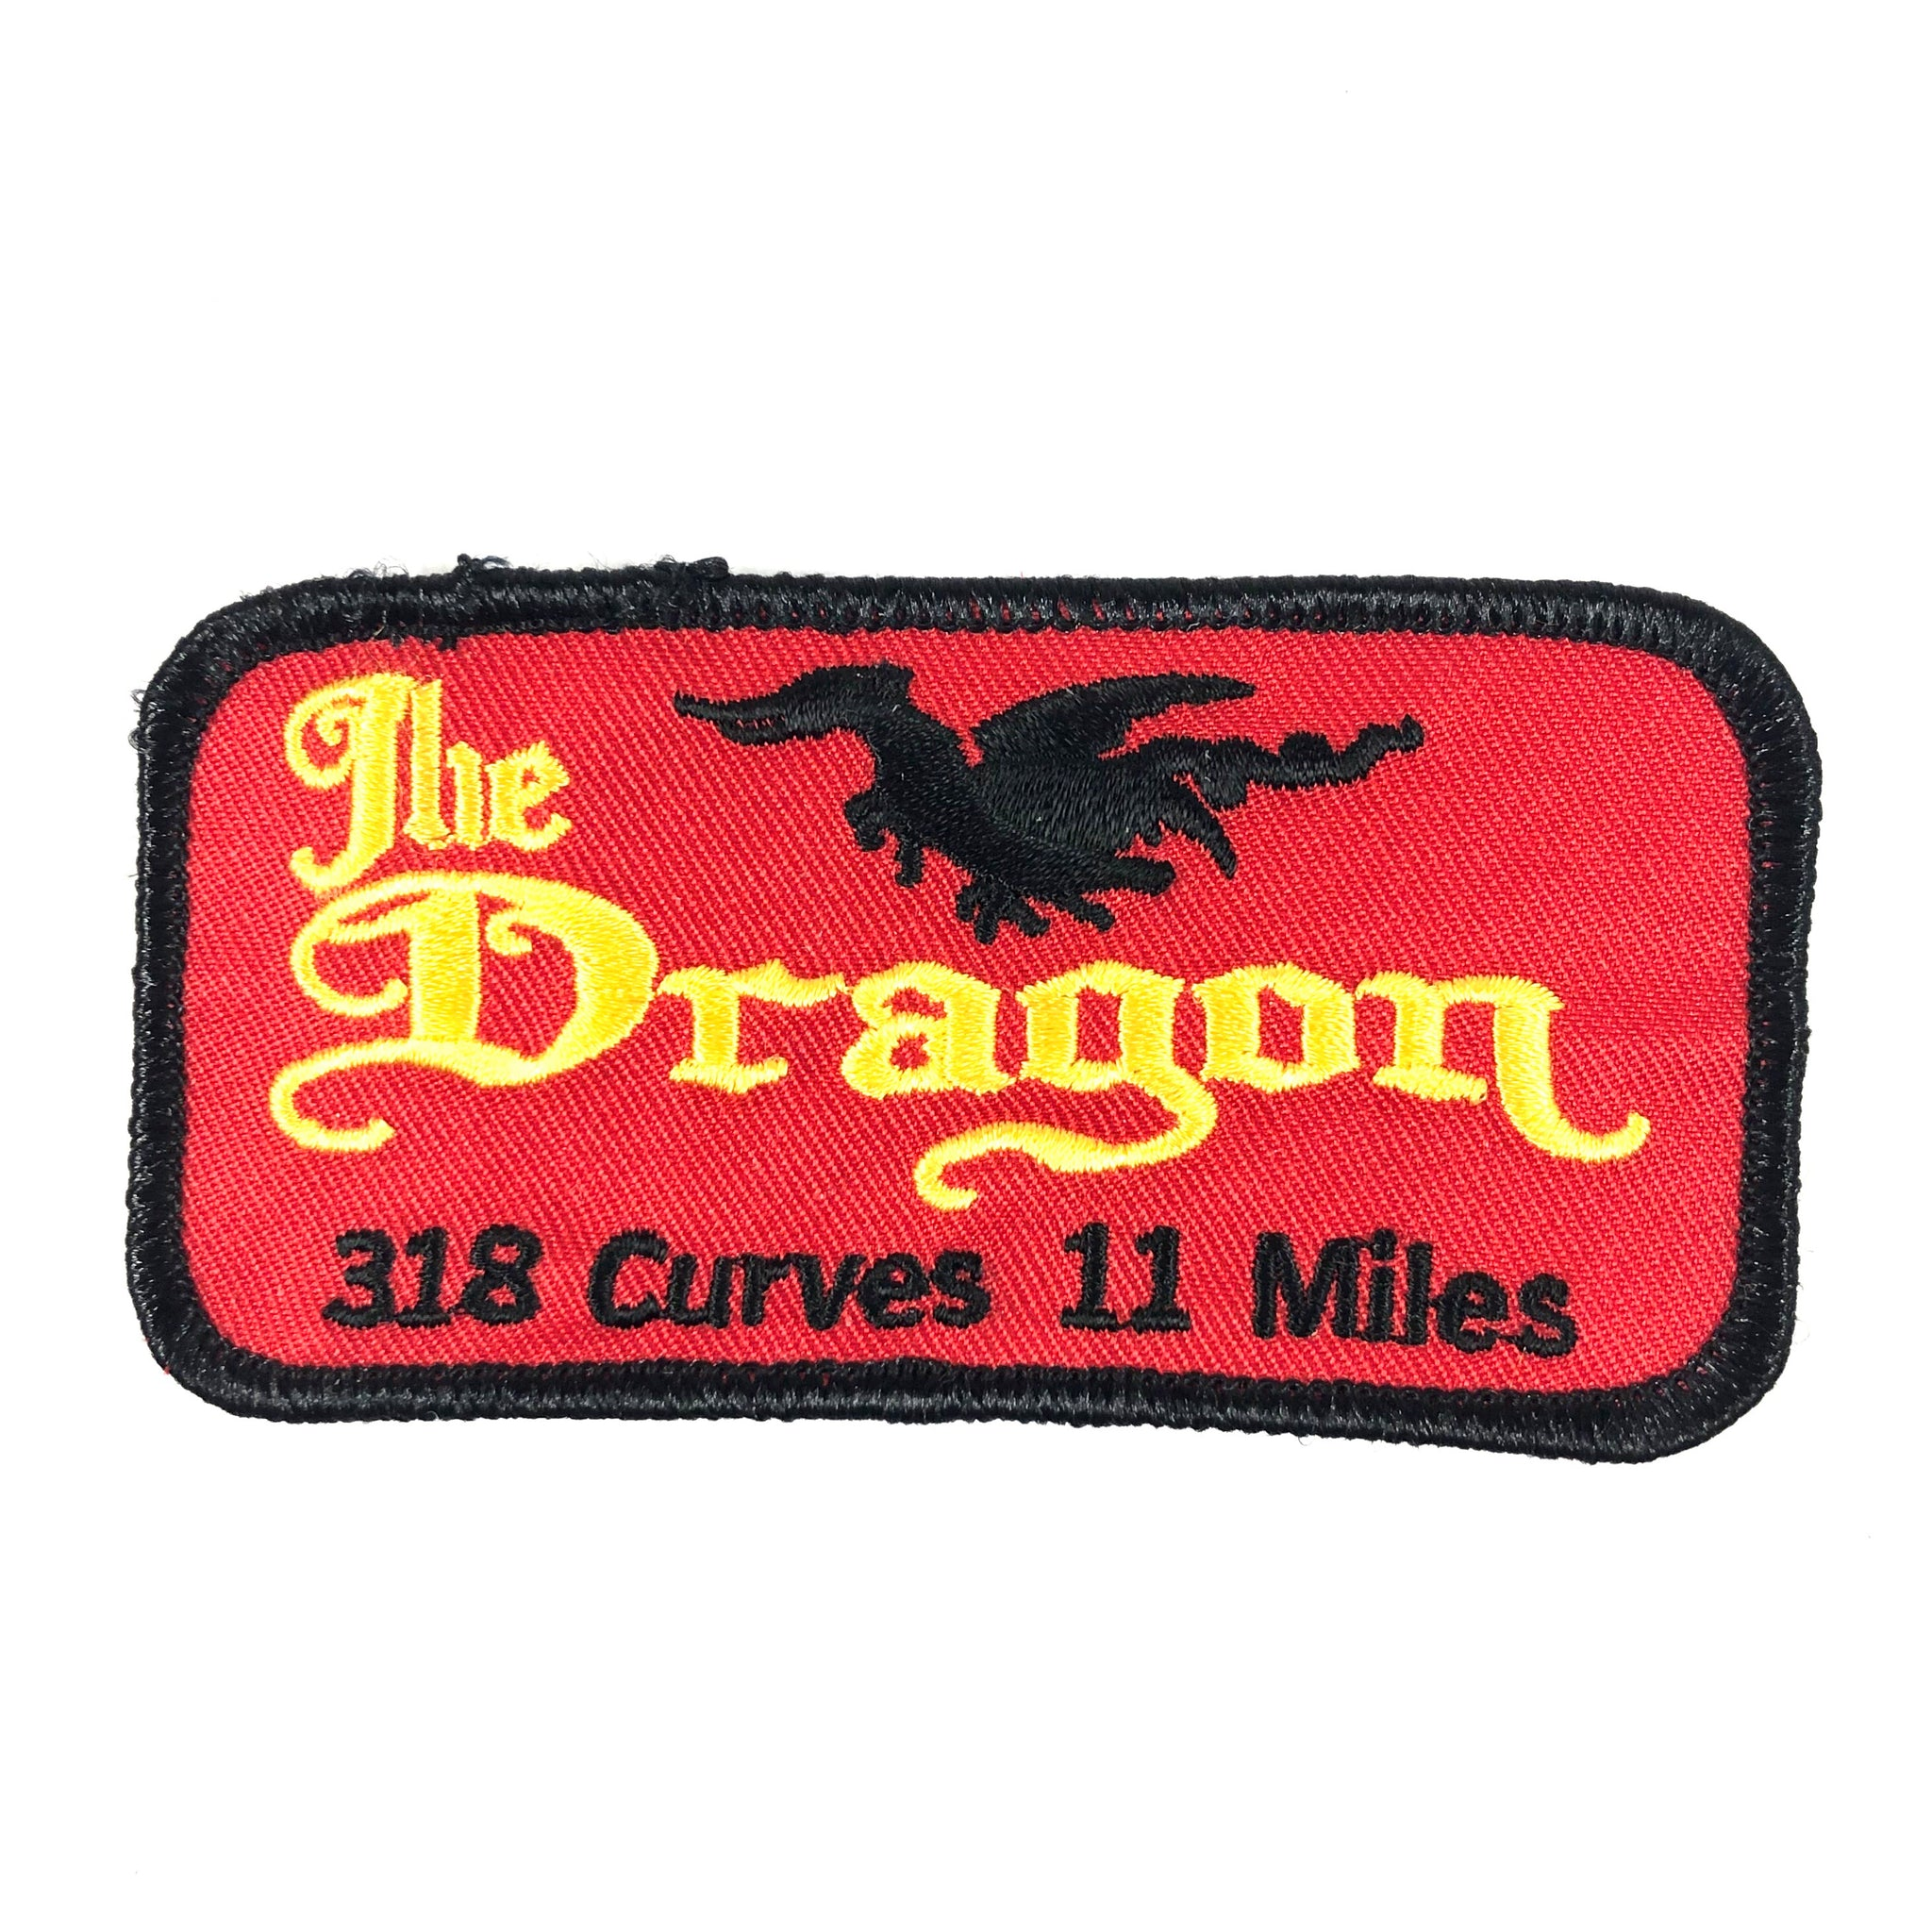 The Dragon Small Patch